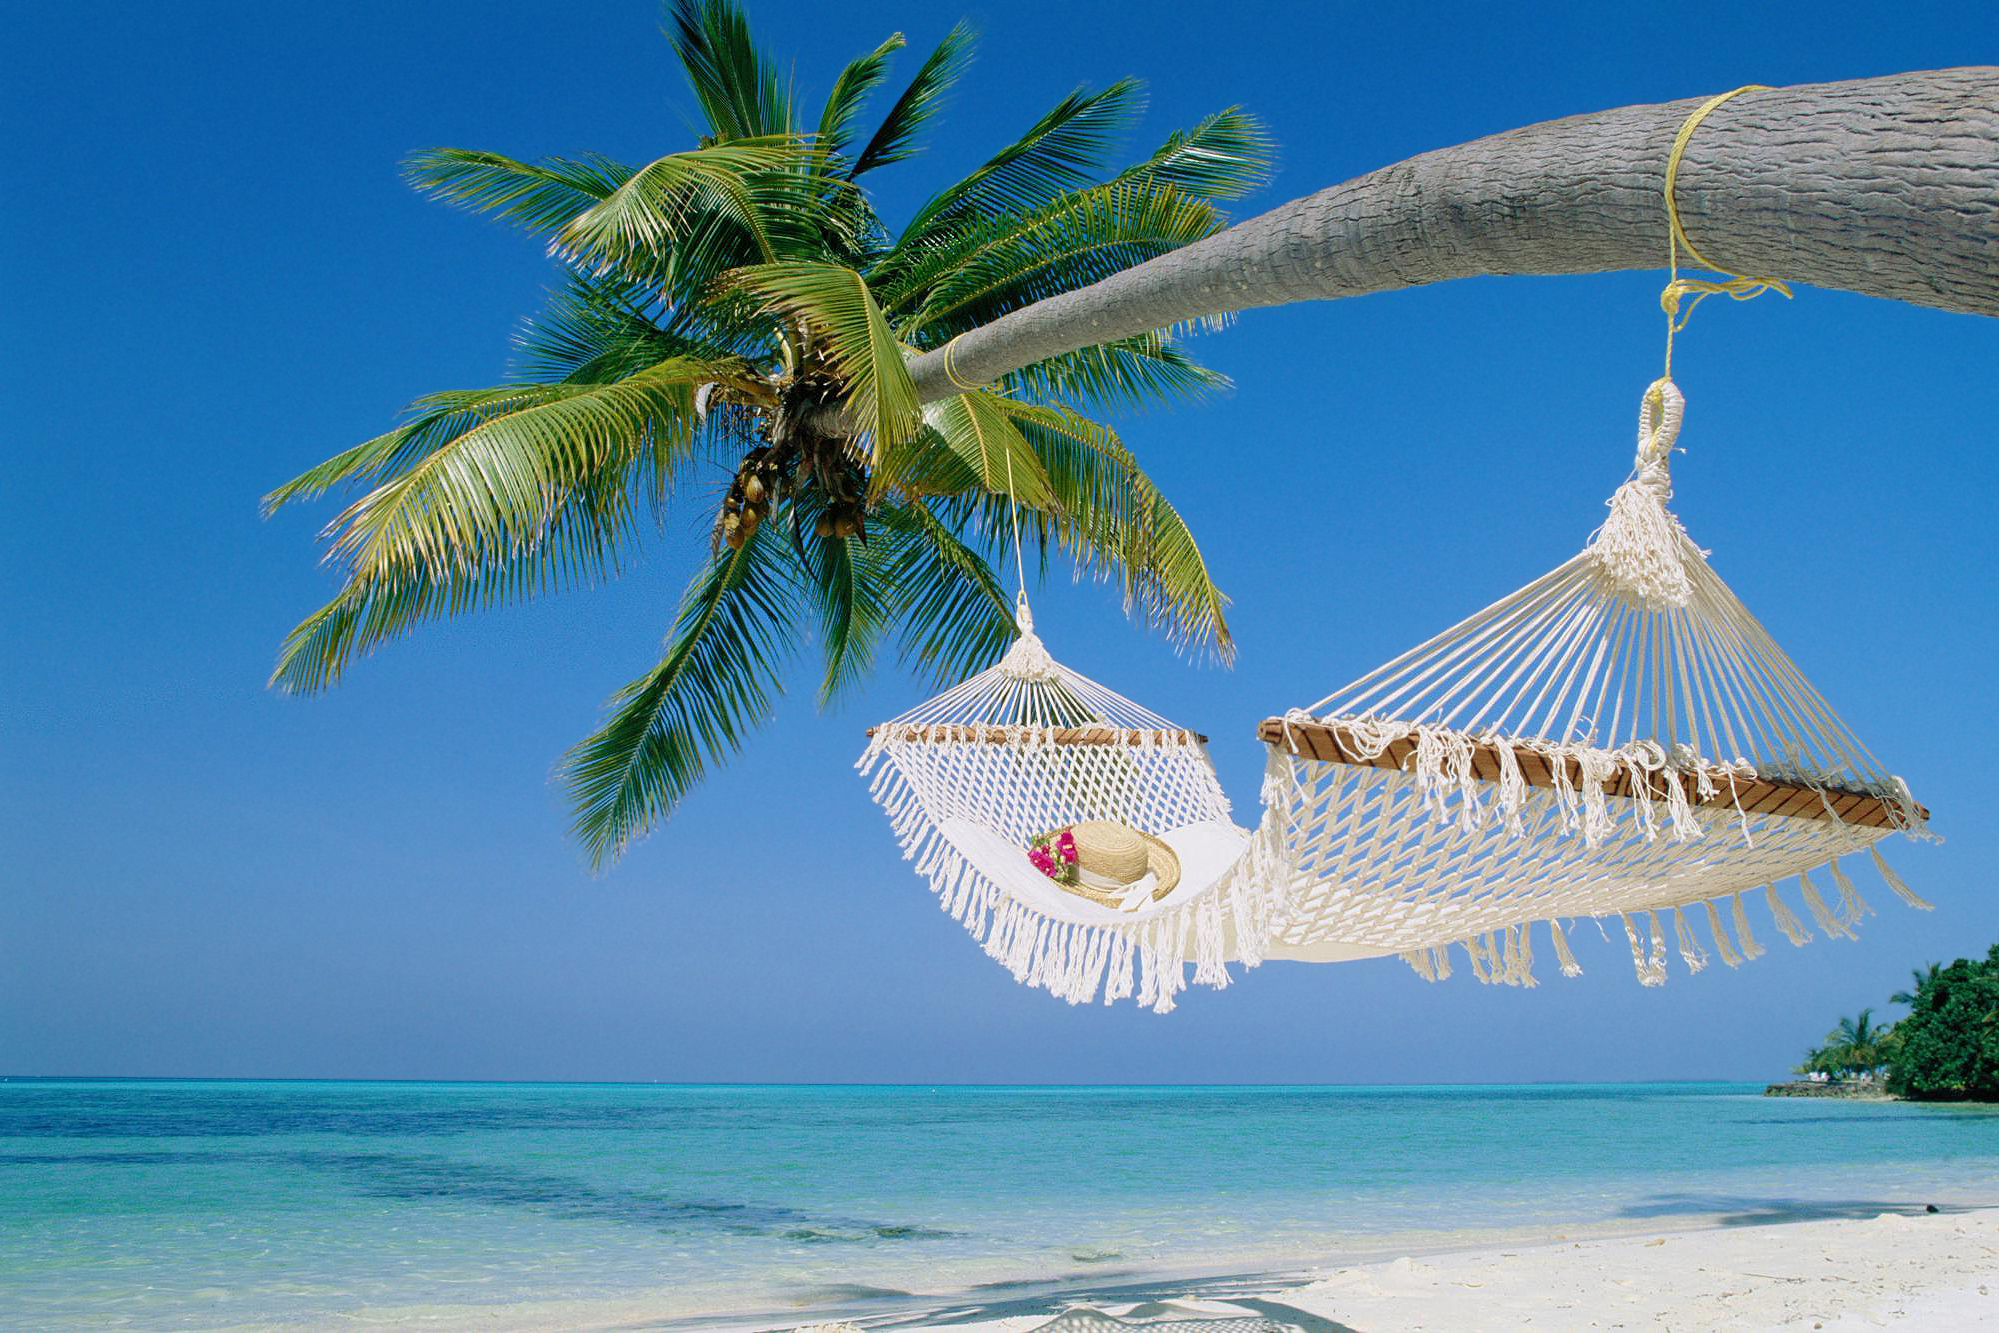 Tropical Island Beach Hammock - wallpaper